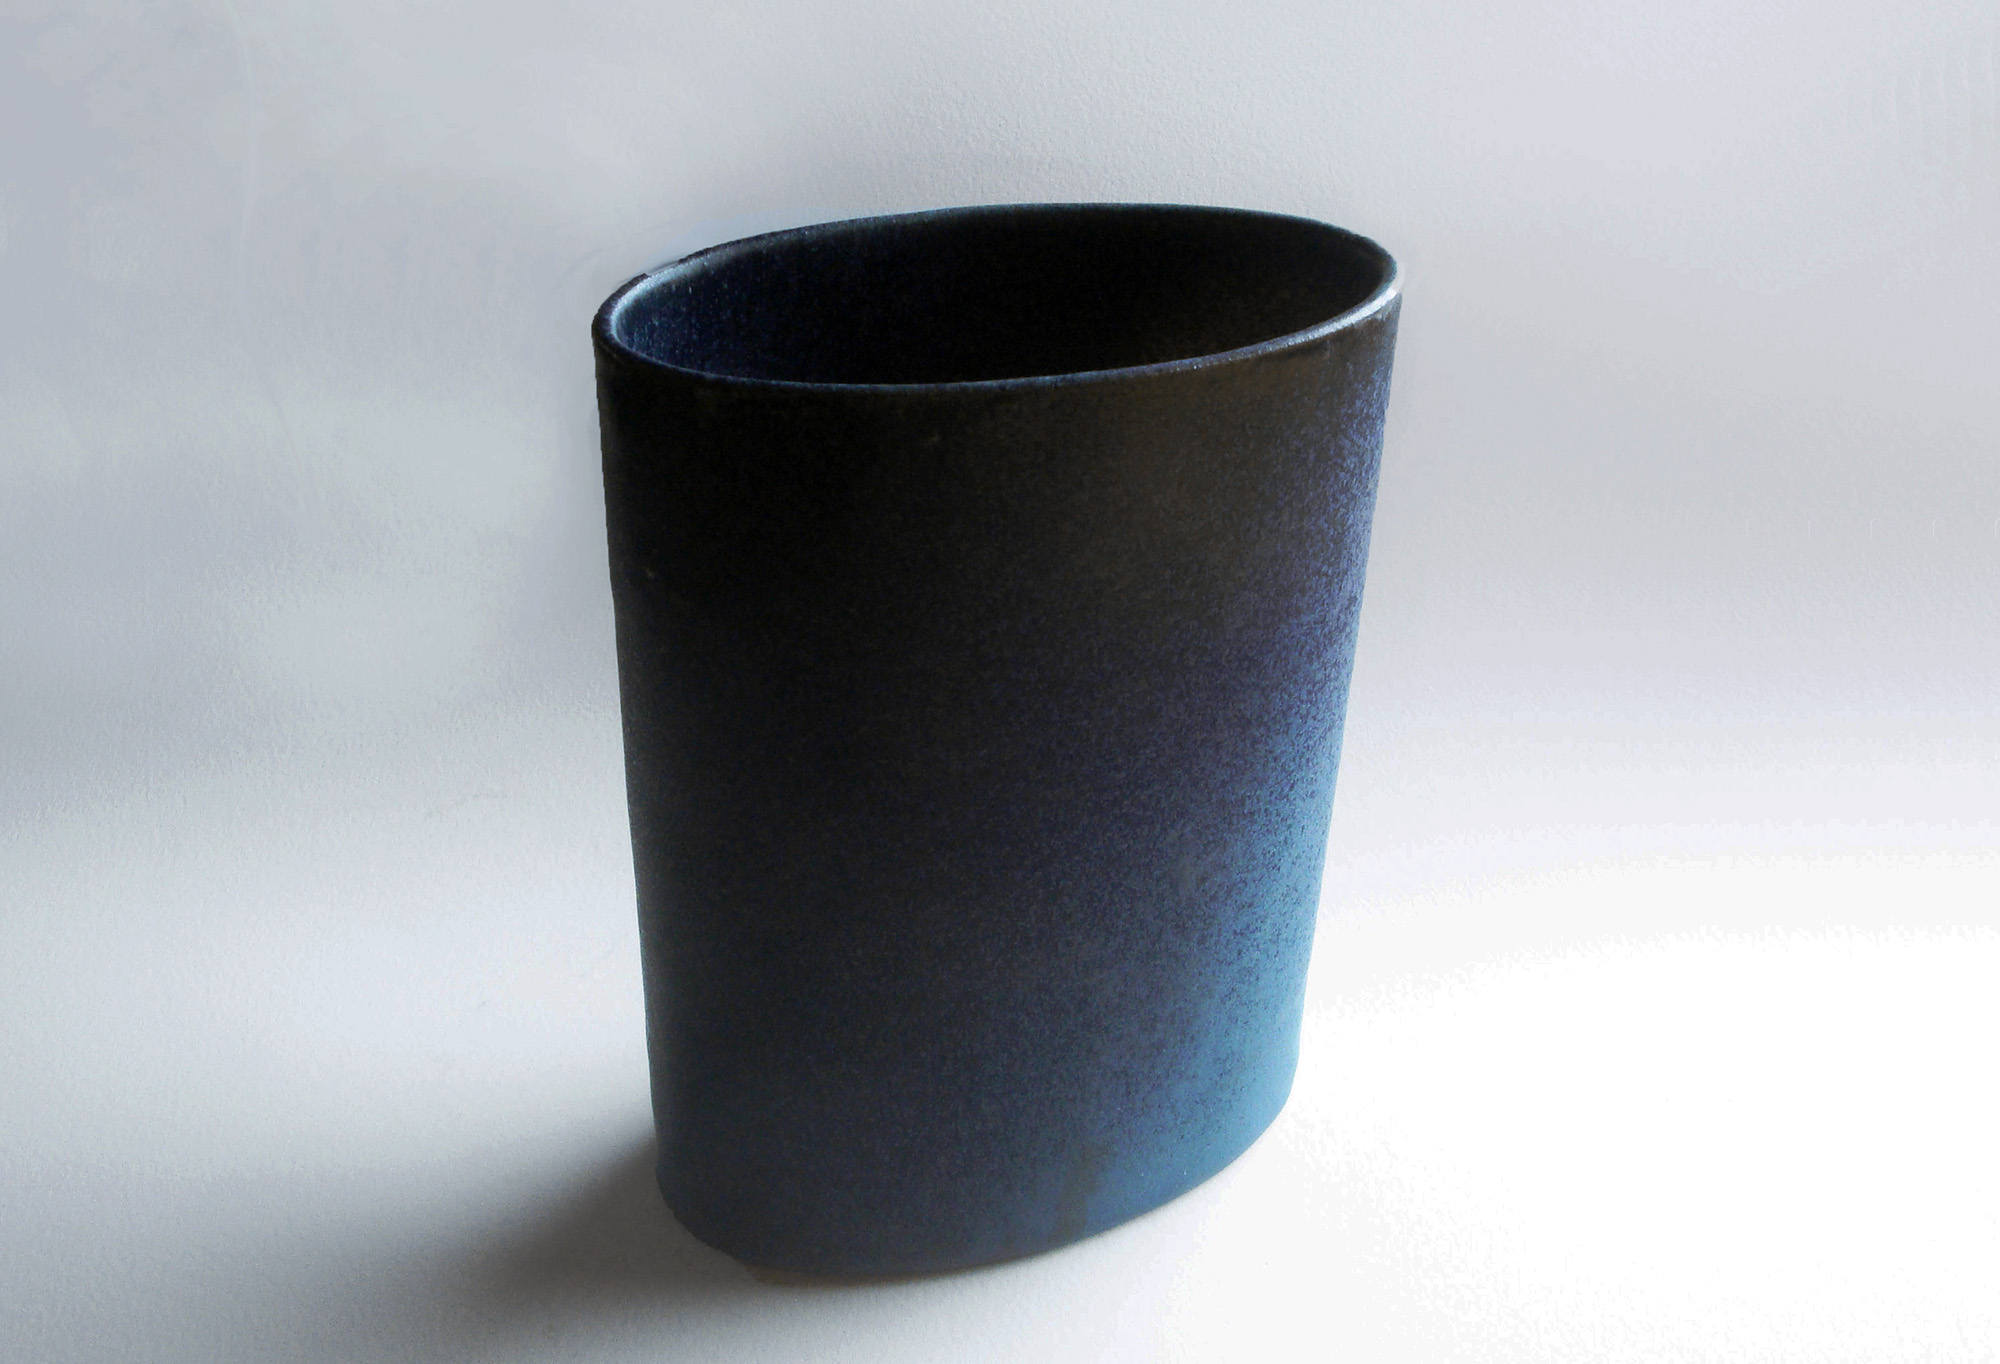 Short Oval Cylinder Vase in Blueberry Glaze